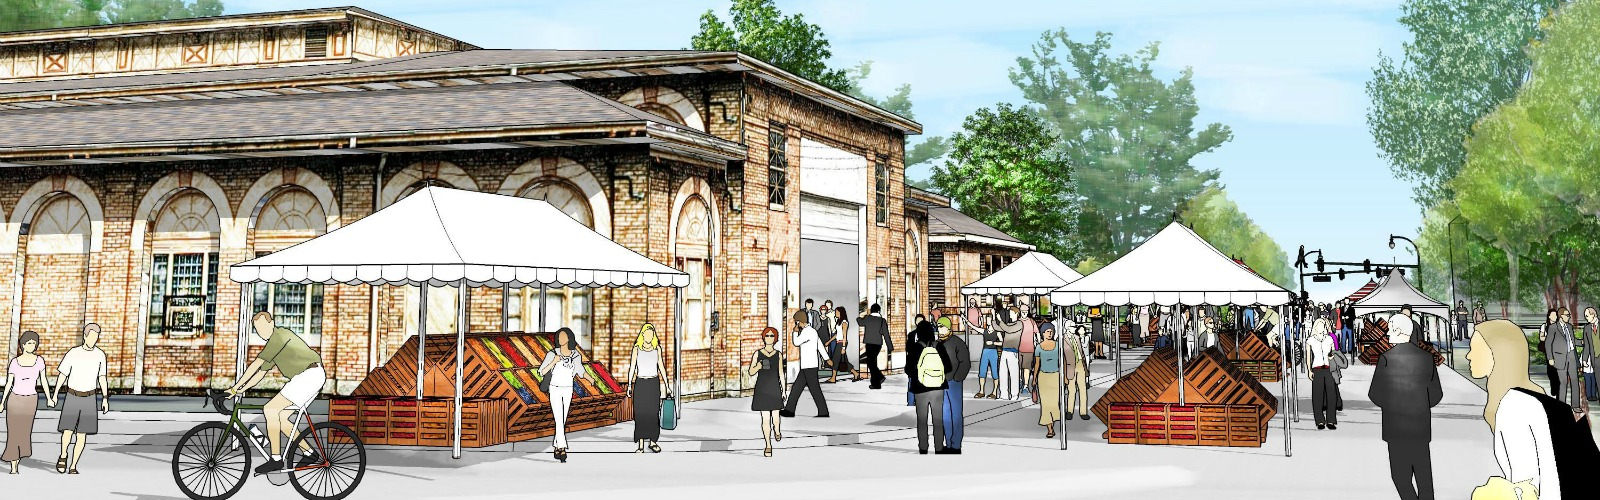 Rendering of a community market in Victory Park